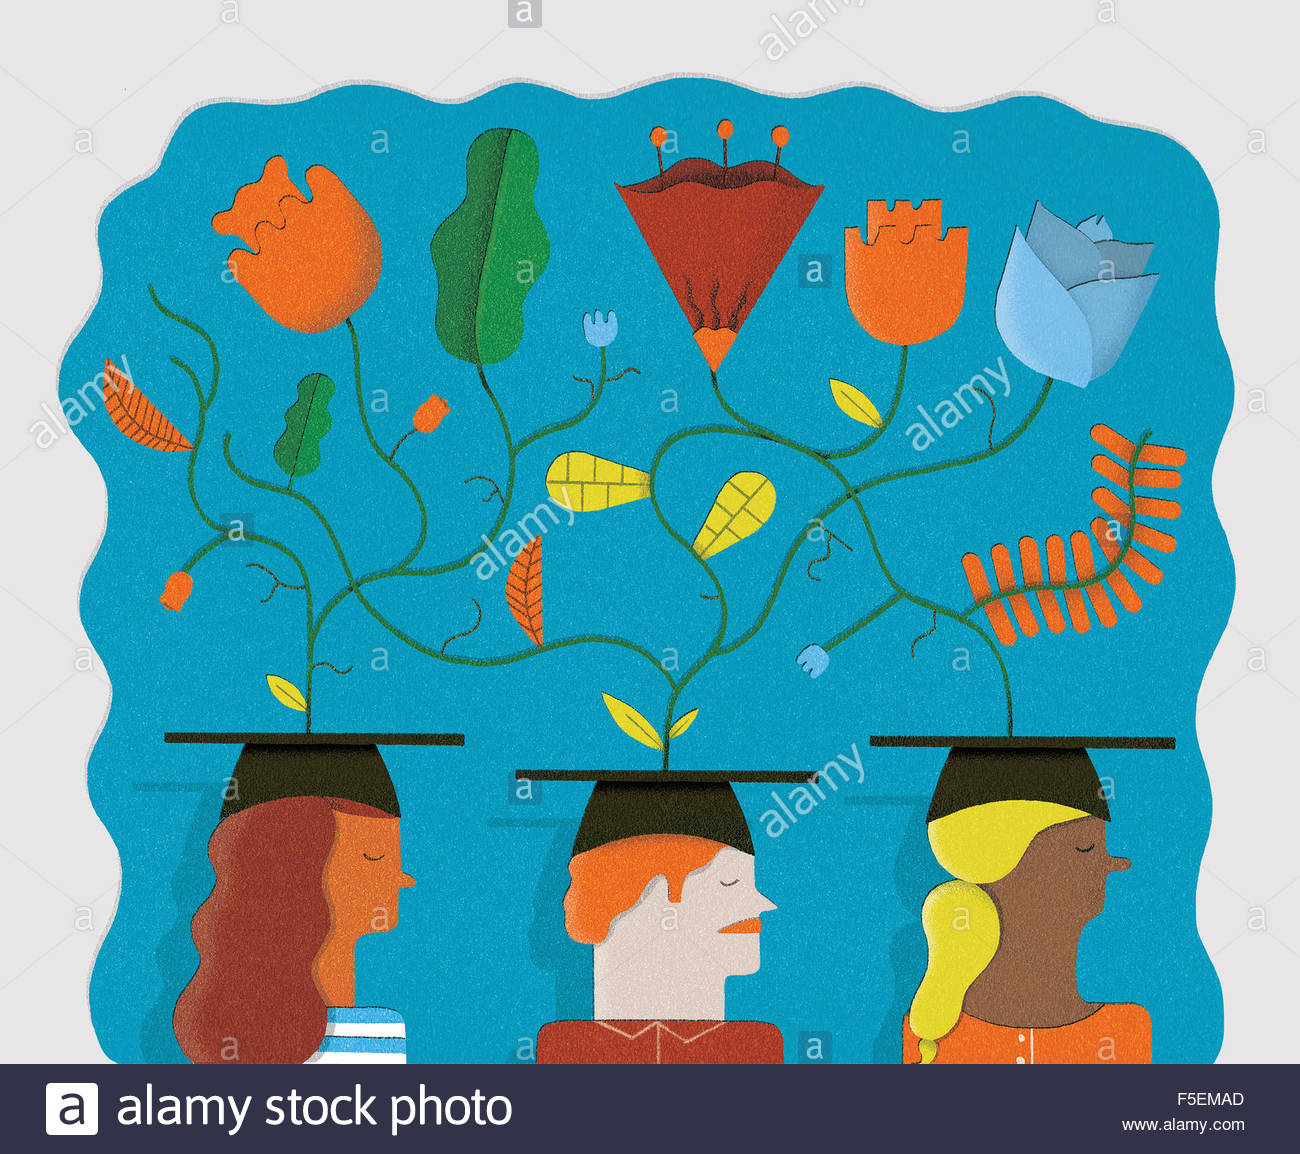 Plants growing from students wearing mortarboards - Stock Image